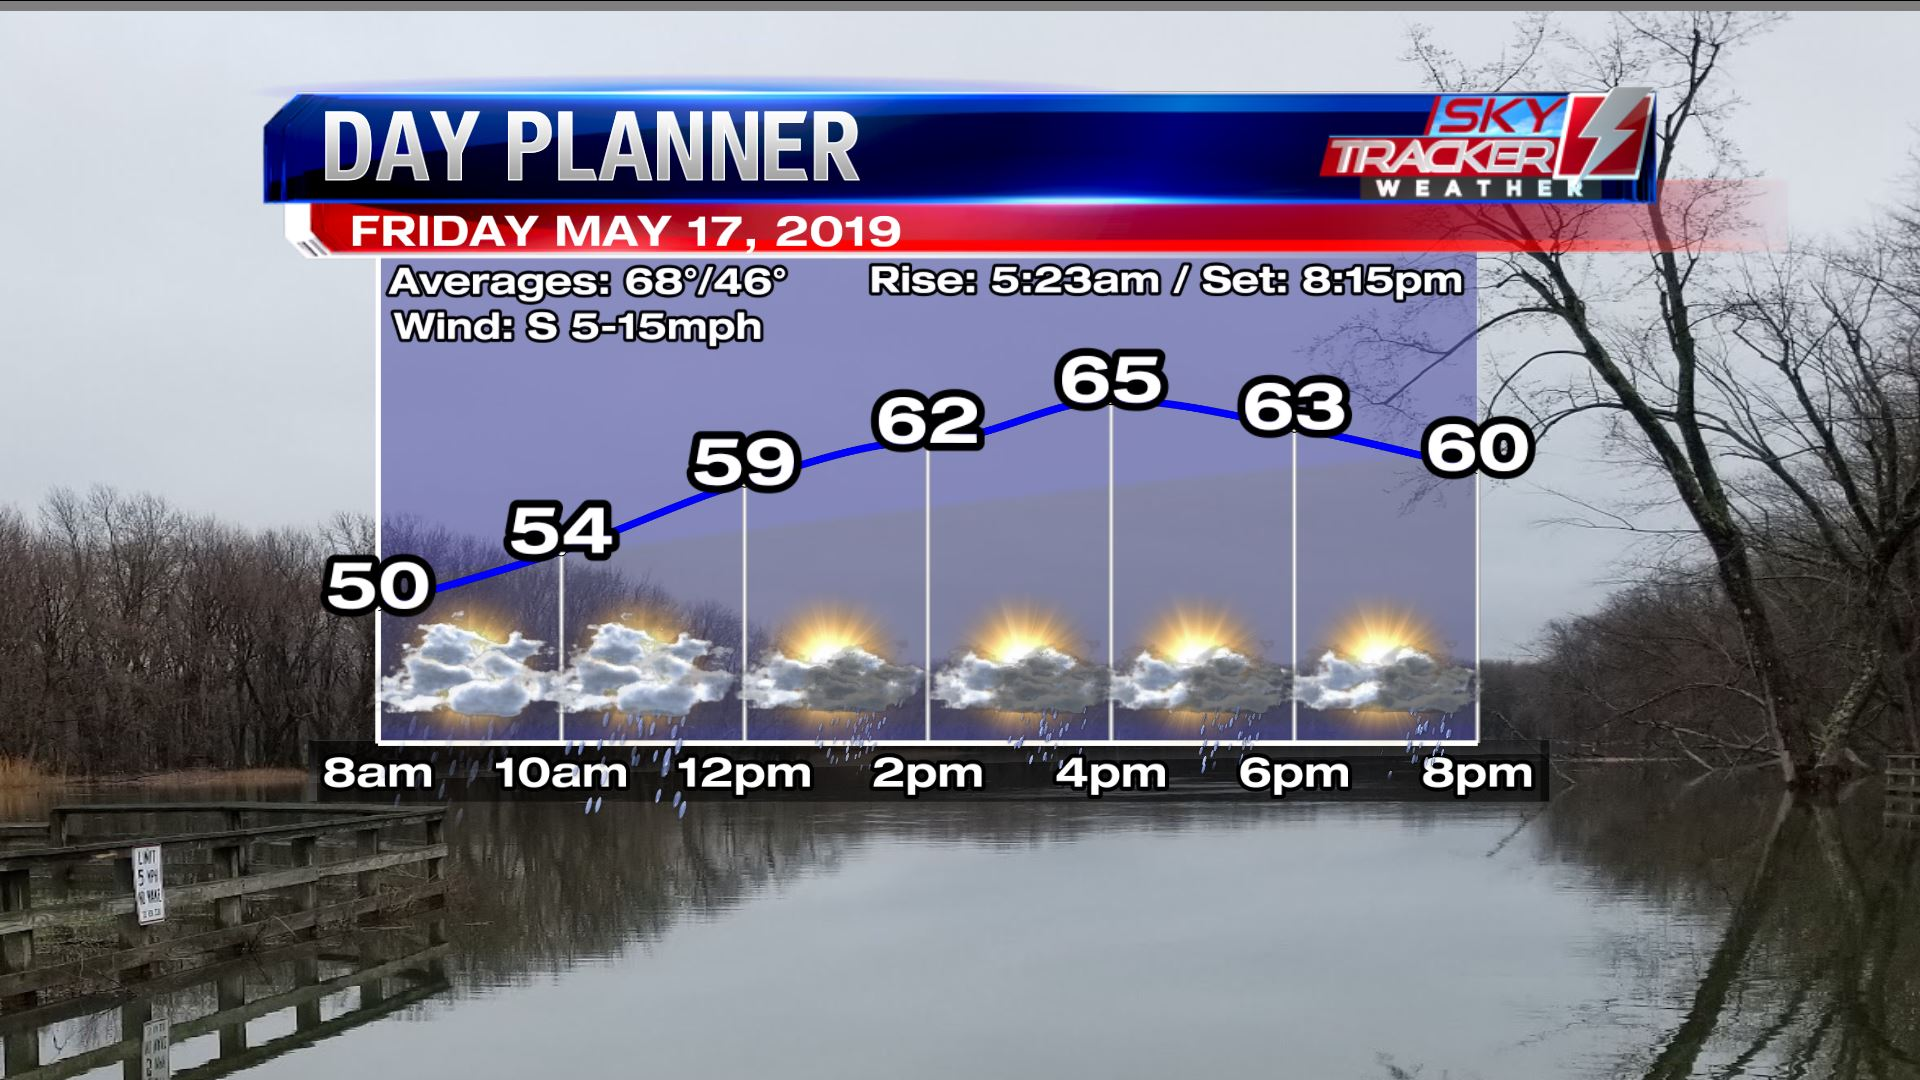 Planner for Friday May 17 2019